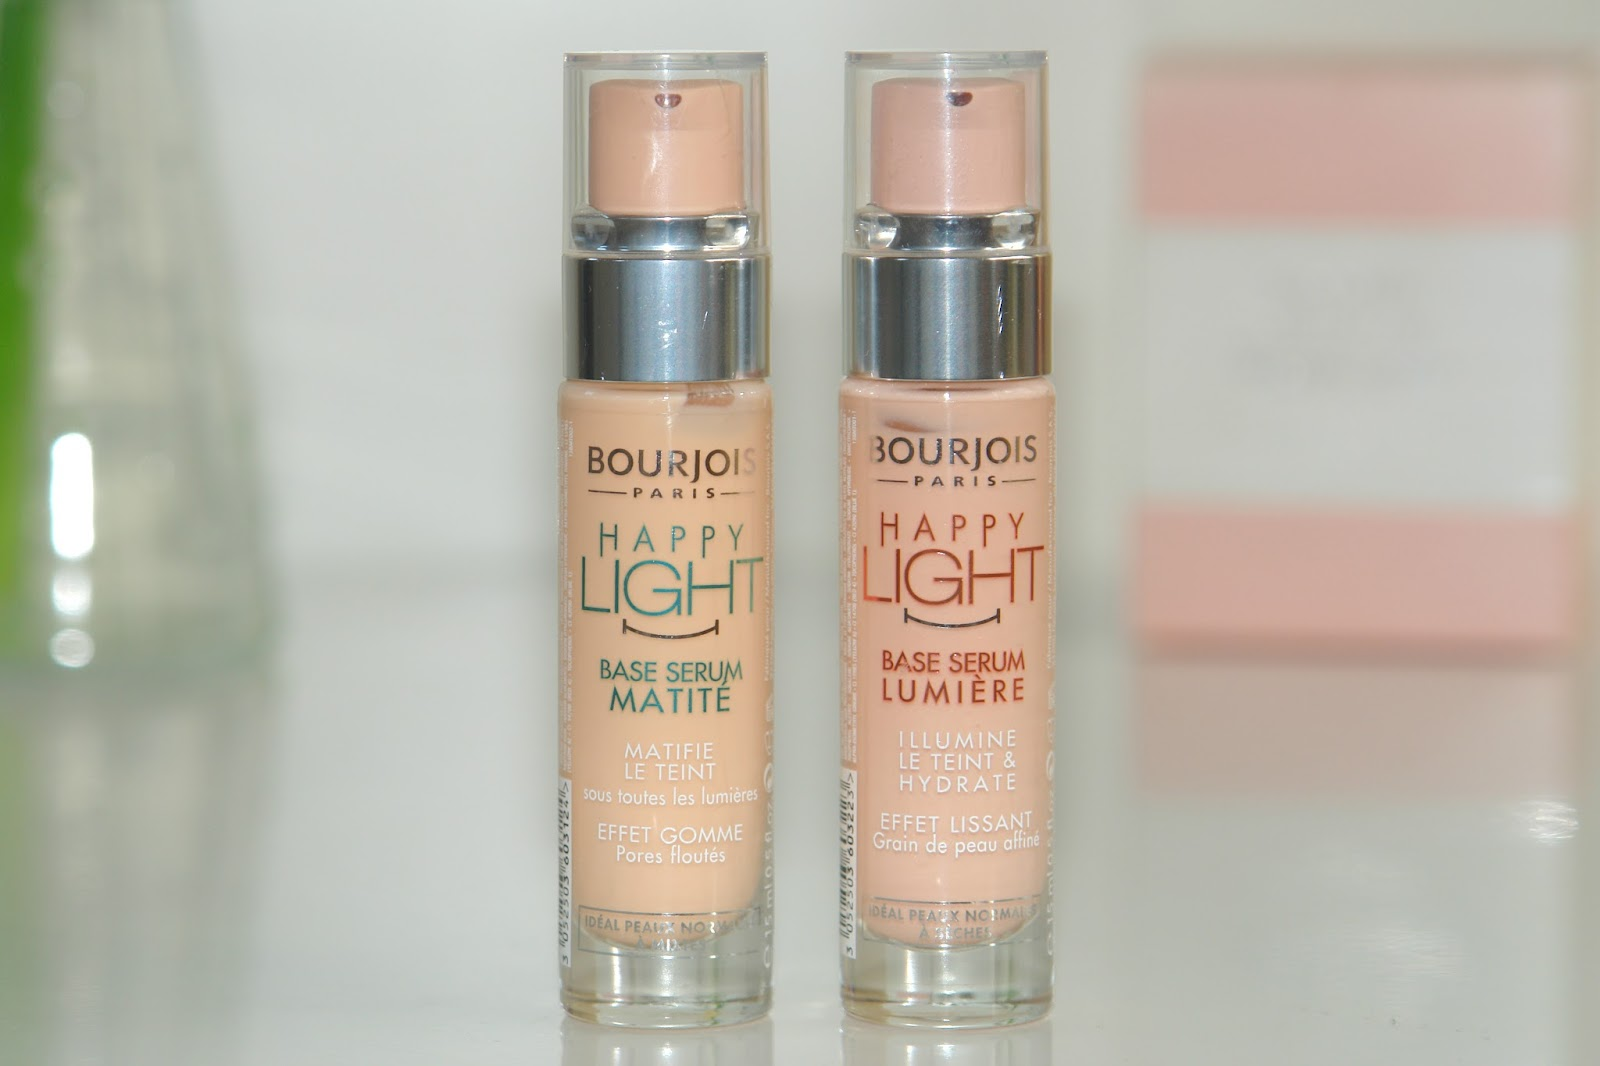 Bourjois Happy Light Primers review, Bourjois, make up, primer, review, swatches, UK beauty blog, Bourjois Happy Light Matte Serum Primer, Bourjois Happy Light Luminous Serum Primer